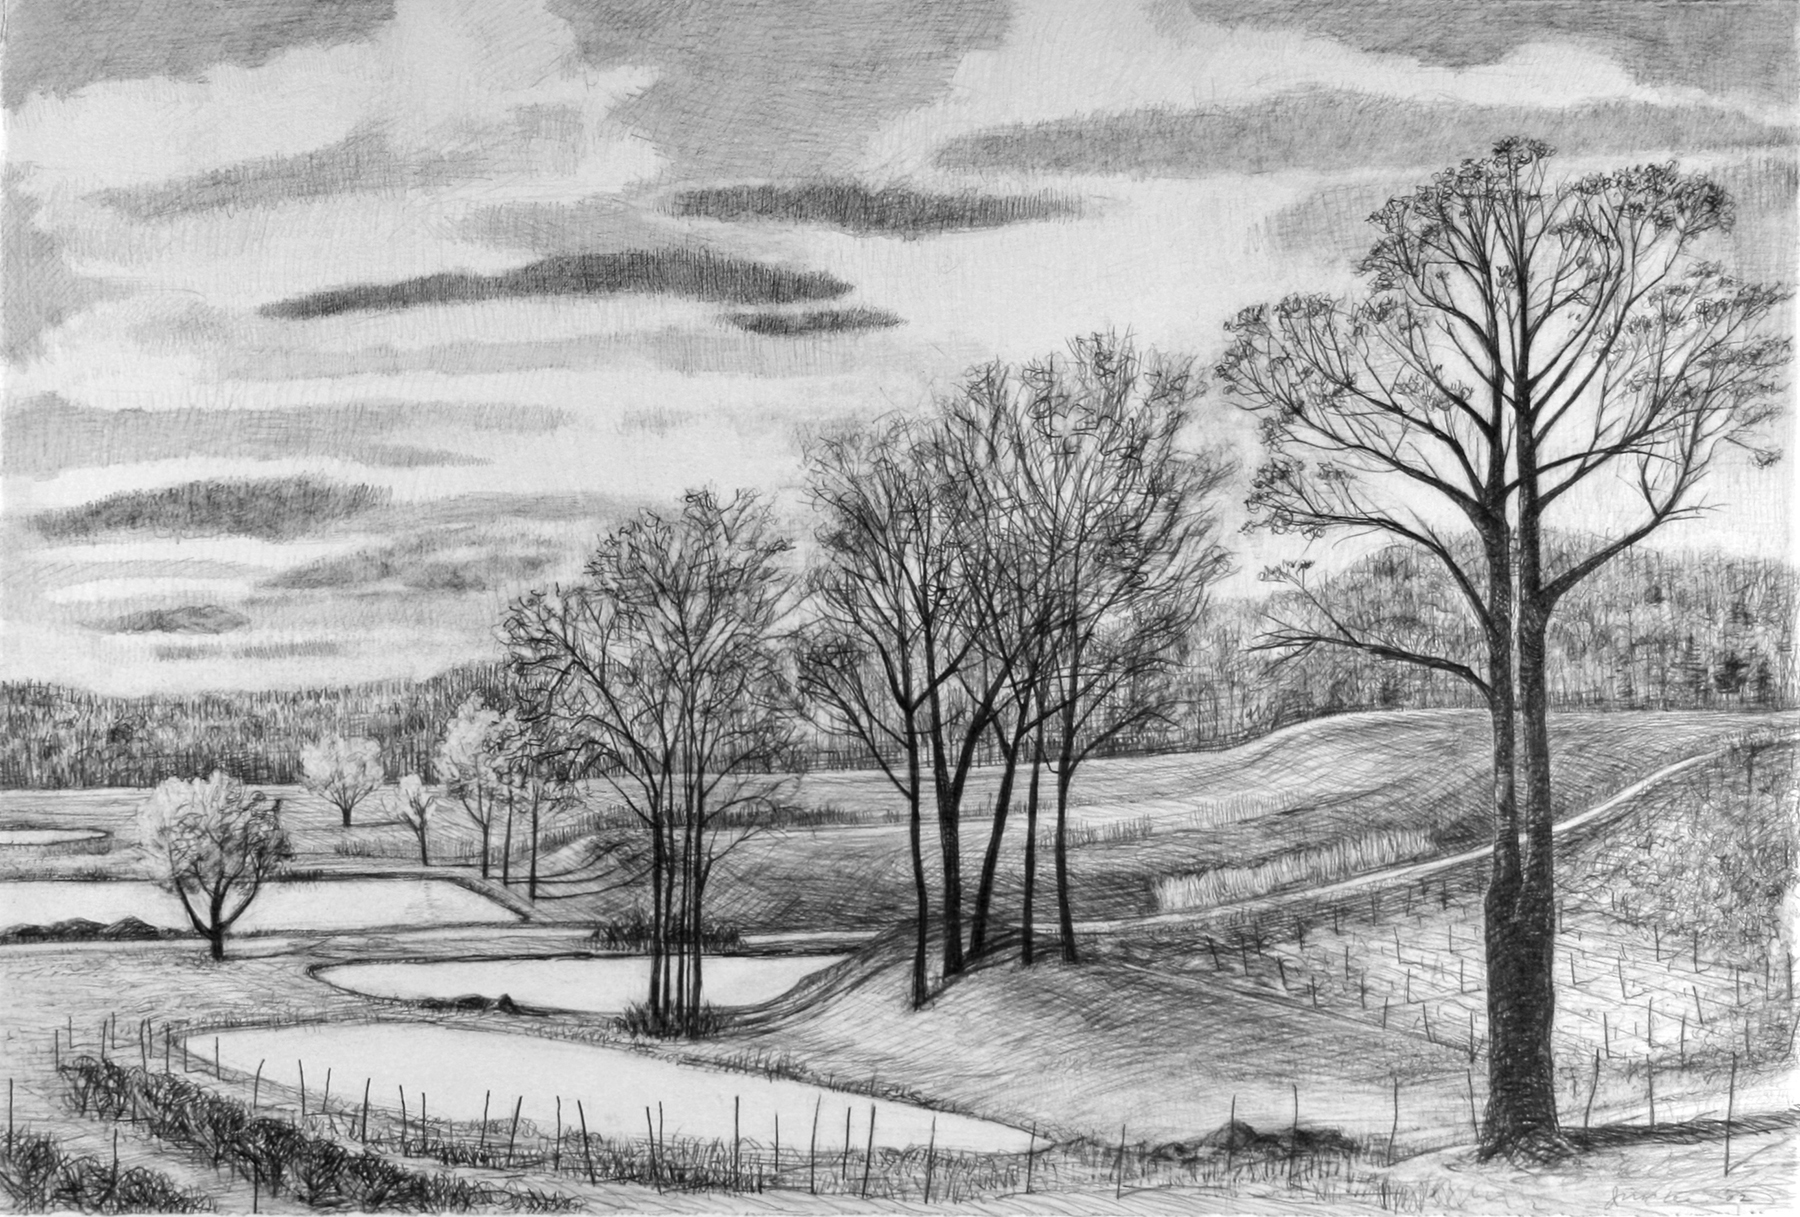 "Ponds at Belltown Orchard   Pencil, 15x22"", 1998"